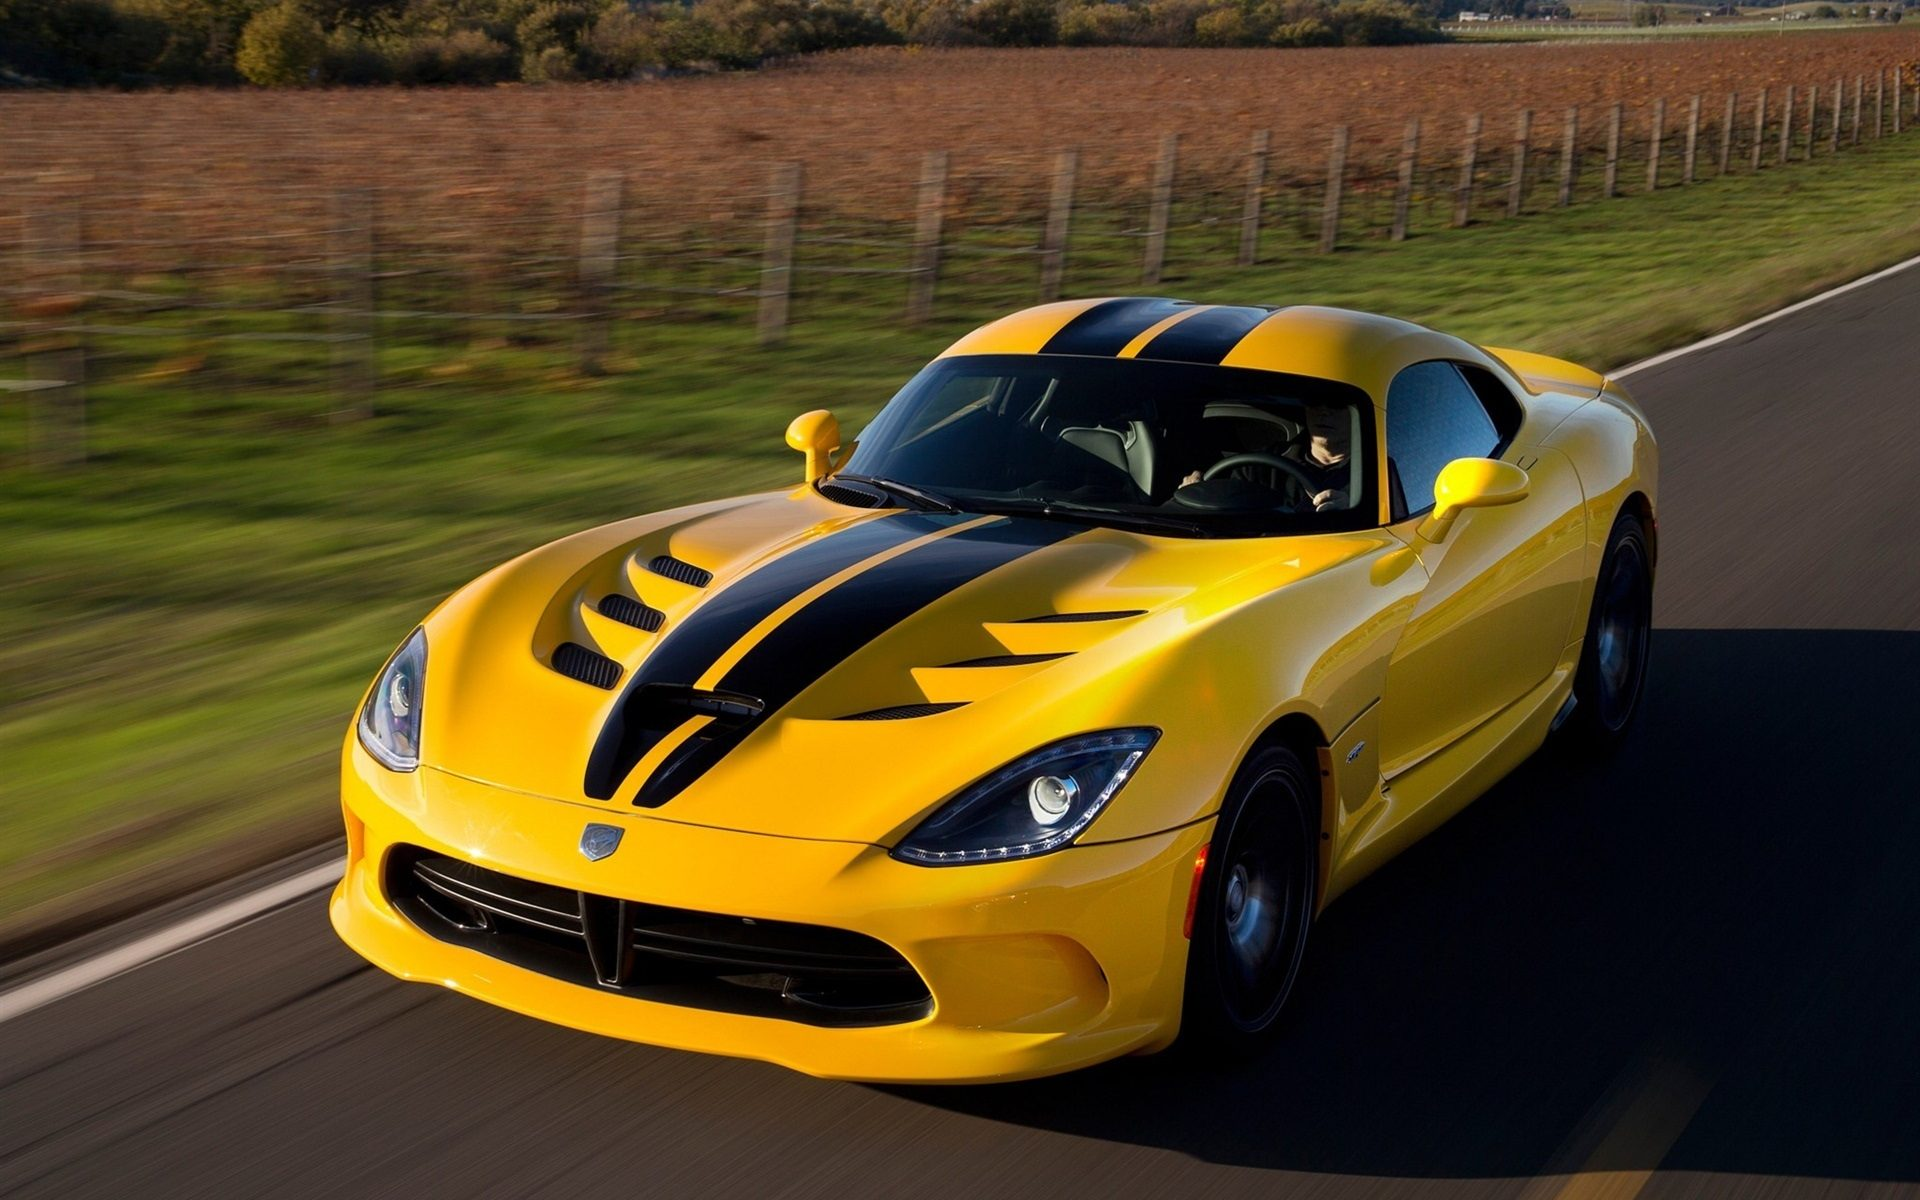 Dodge-Viper-SRT-GTS-Yellow-Color